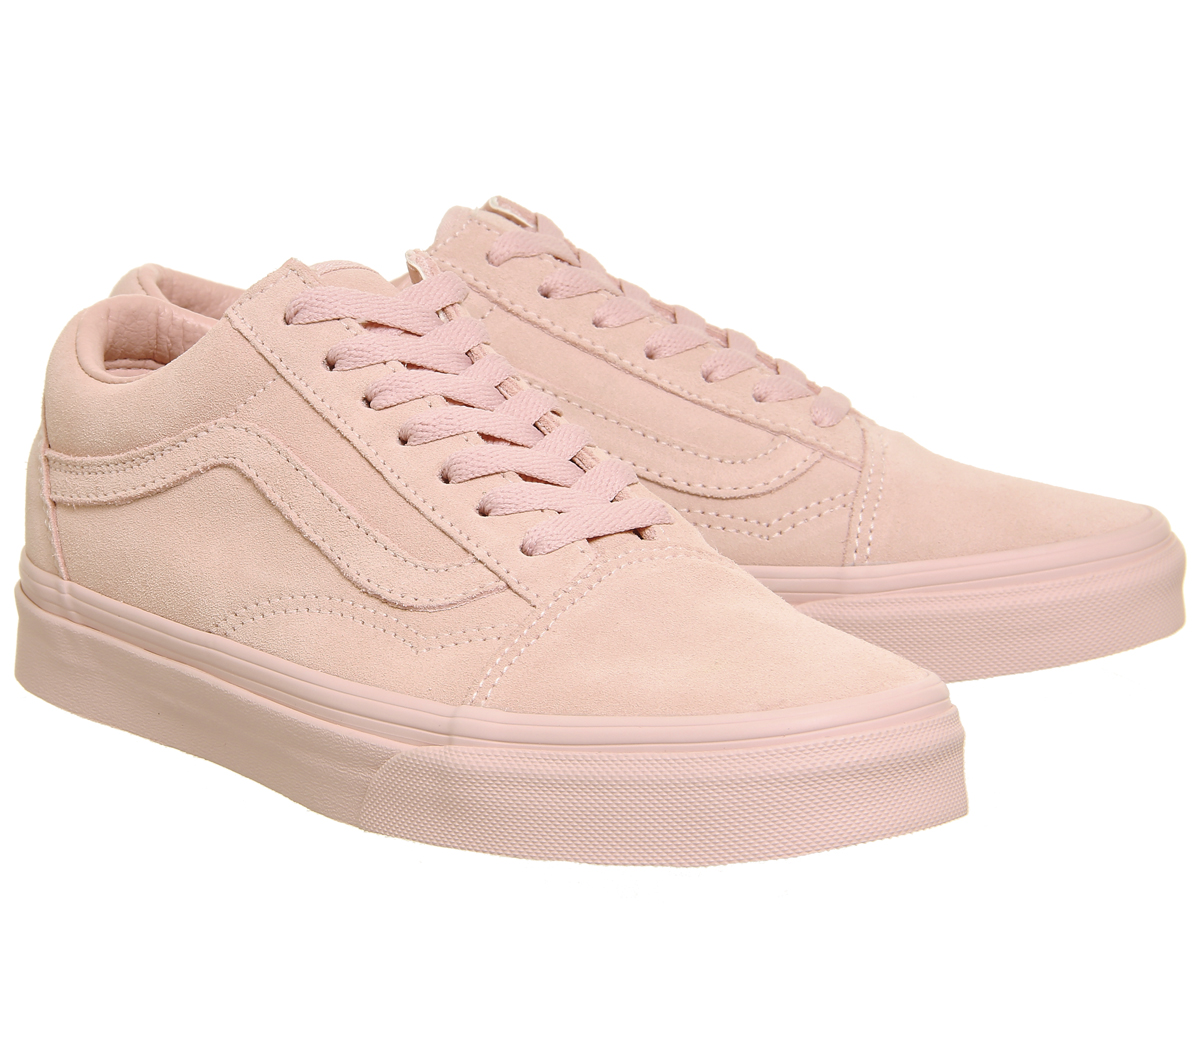 2018 2017 Vans Mens Old Skool Trainers Peachskin Suede Exclusive Shoes Size 9 5 US 8 8 5 8